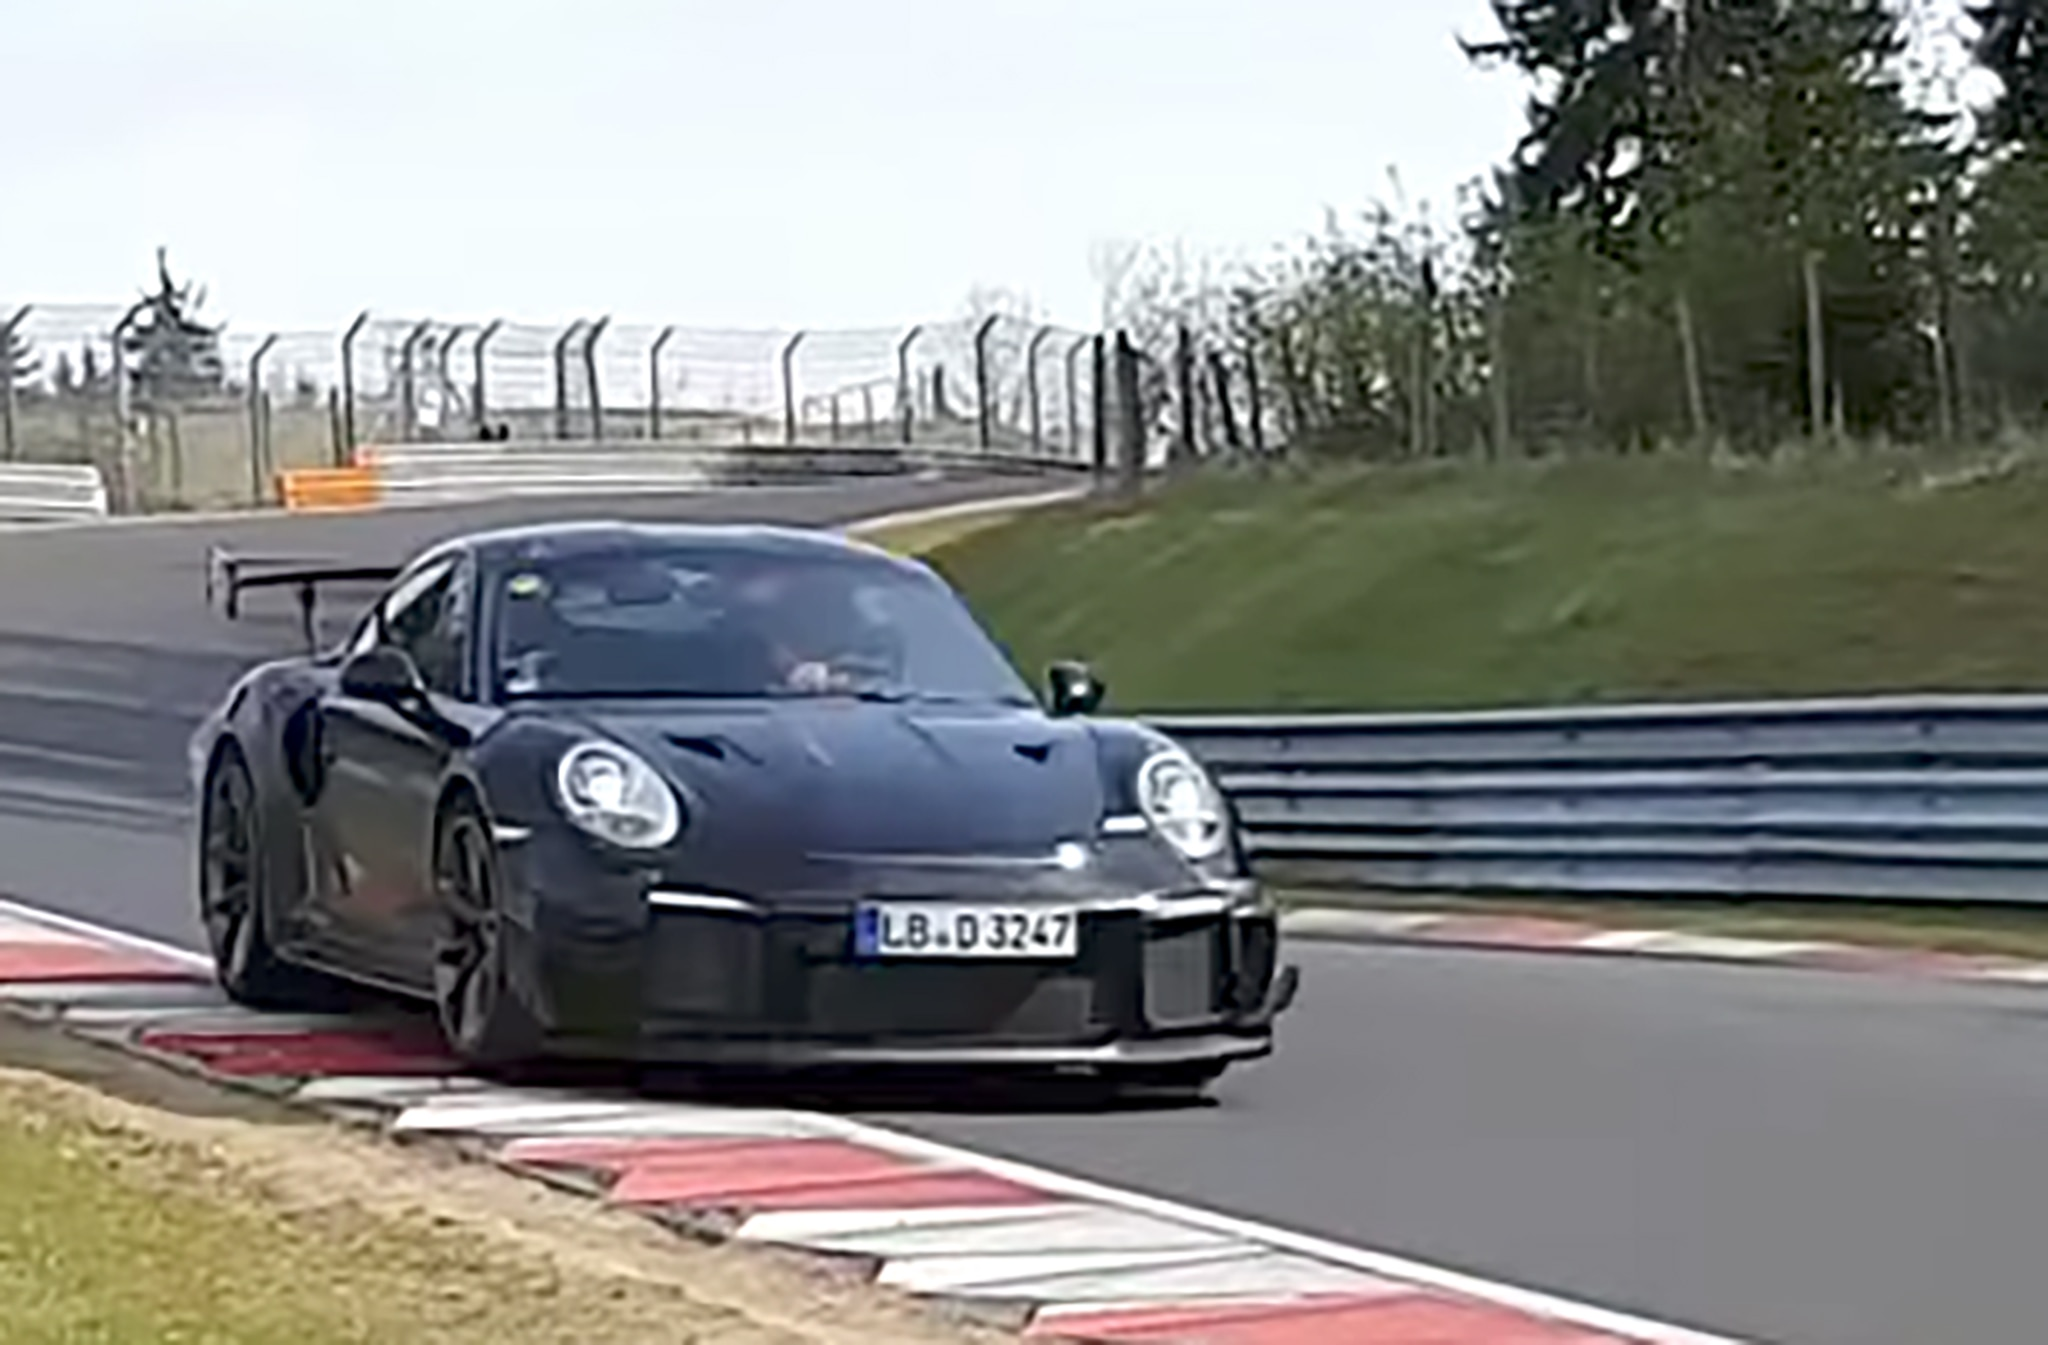 Porsche-911-GT2-RS Extraordinary Porsche 911 Gt2 Rs Used Cars Trend